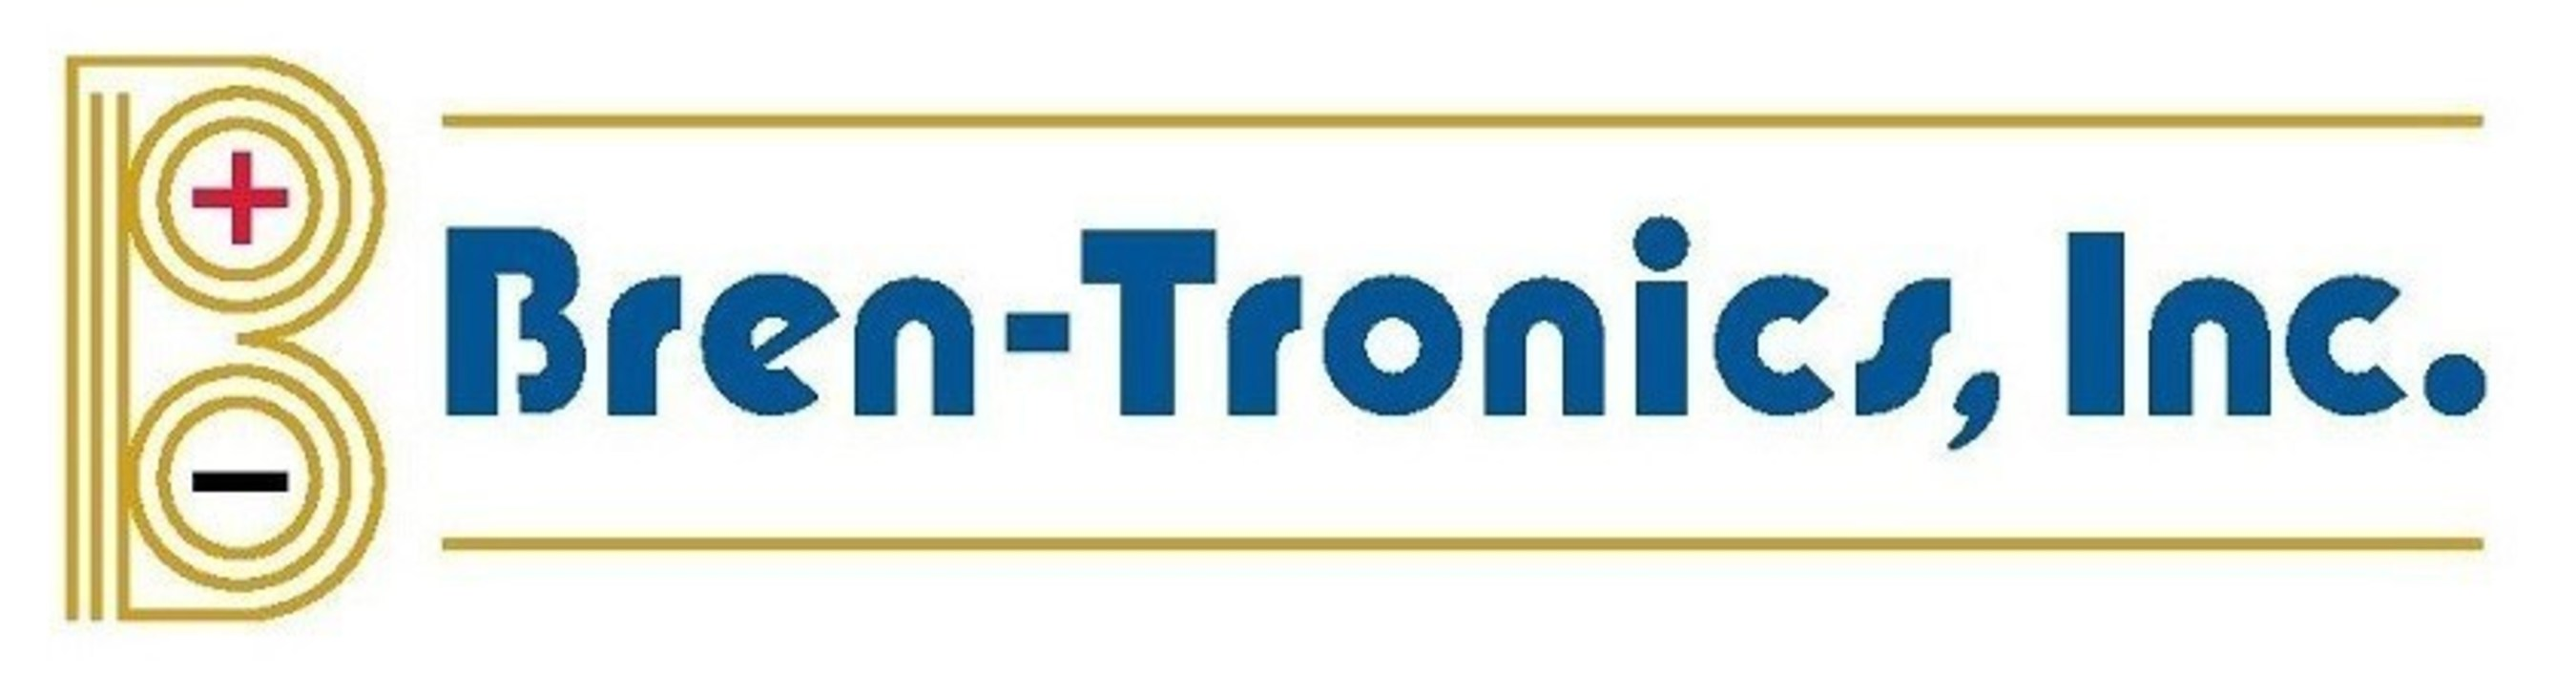 U.S. Marine Corps Awards $38 Million Contract for Next Generation Battery Charger to Bren-Tronics, Inc.